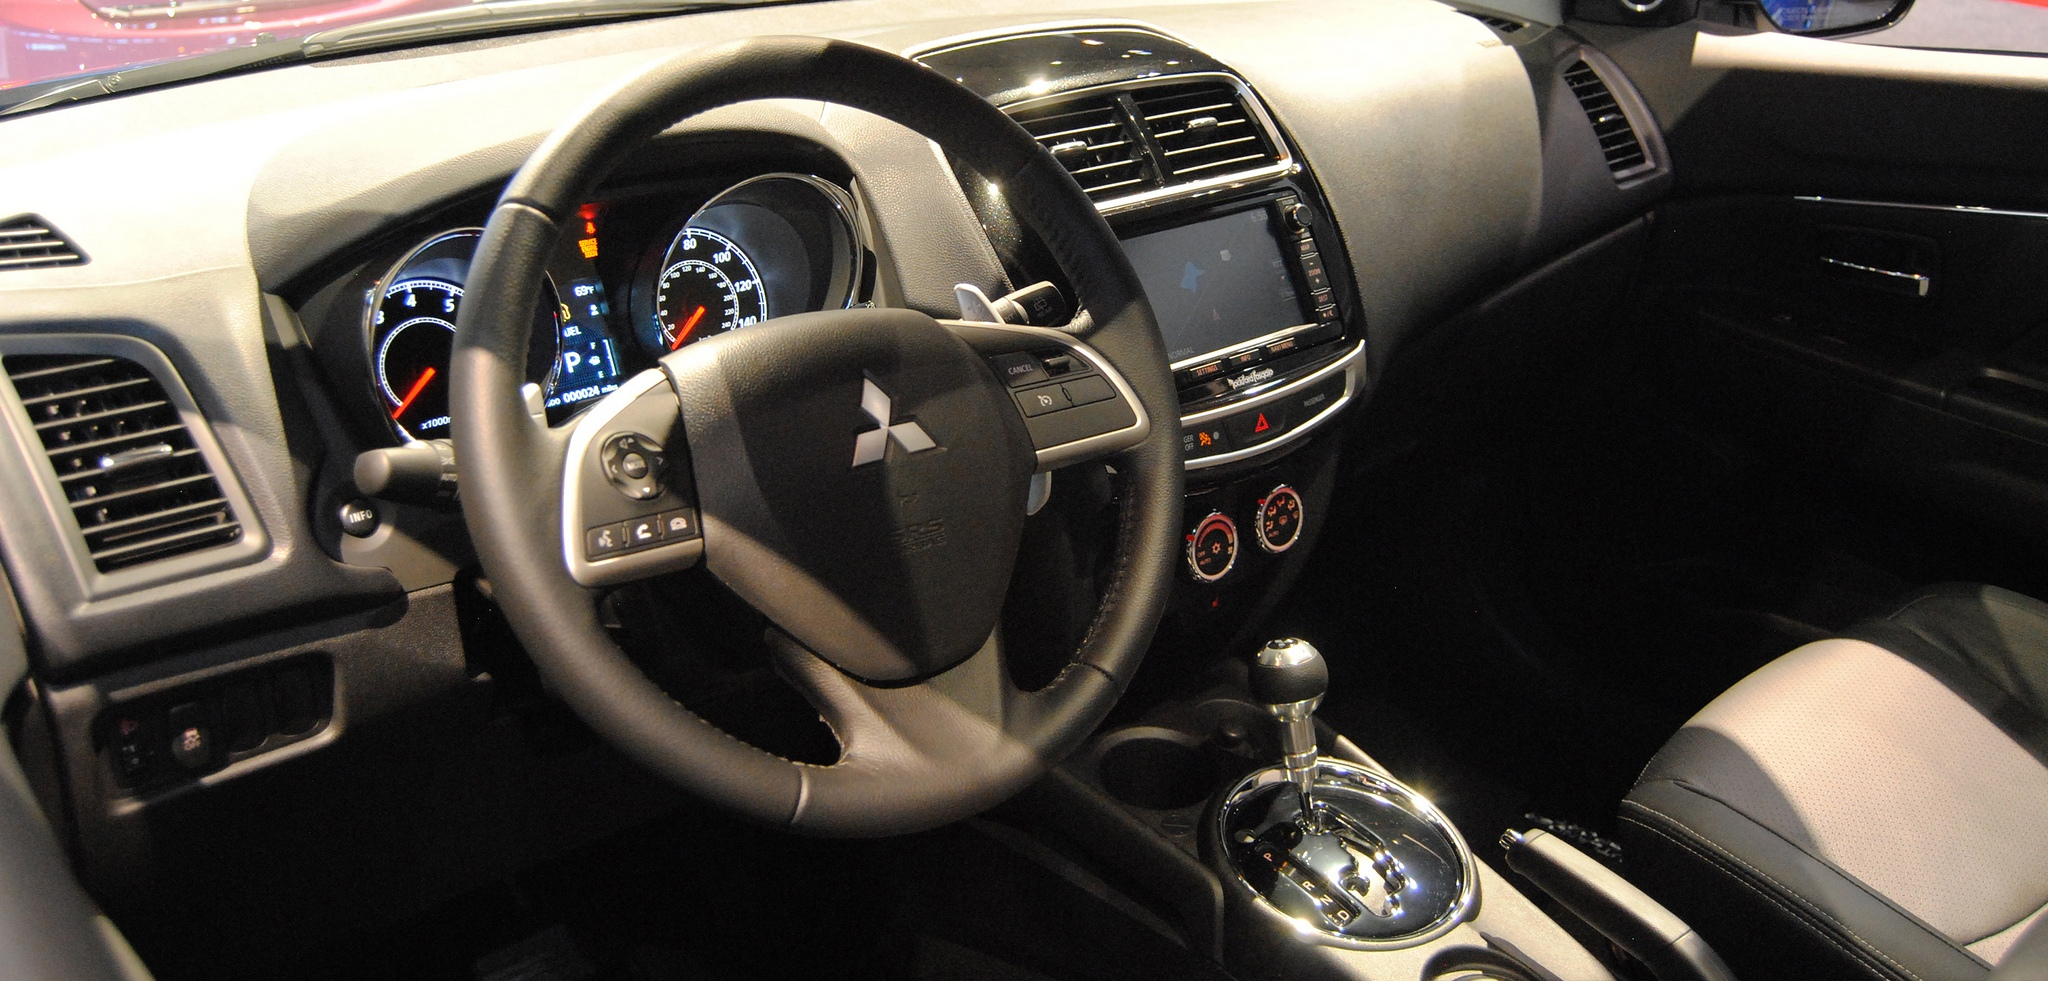 Mitsubishi Outlander Dashboard